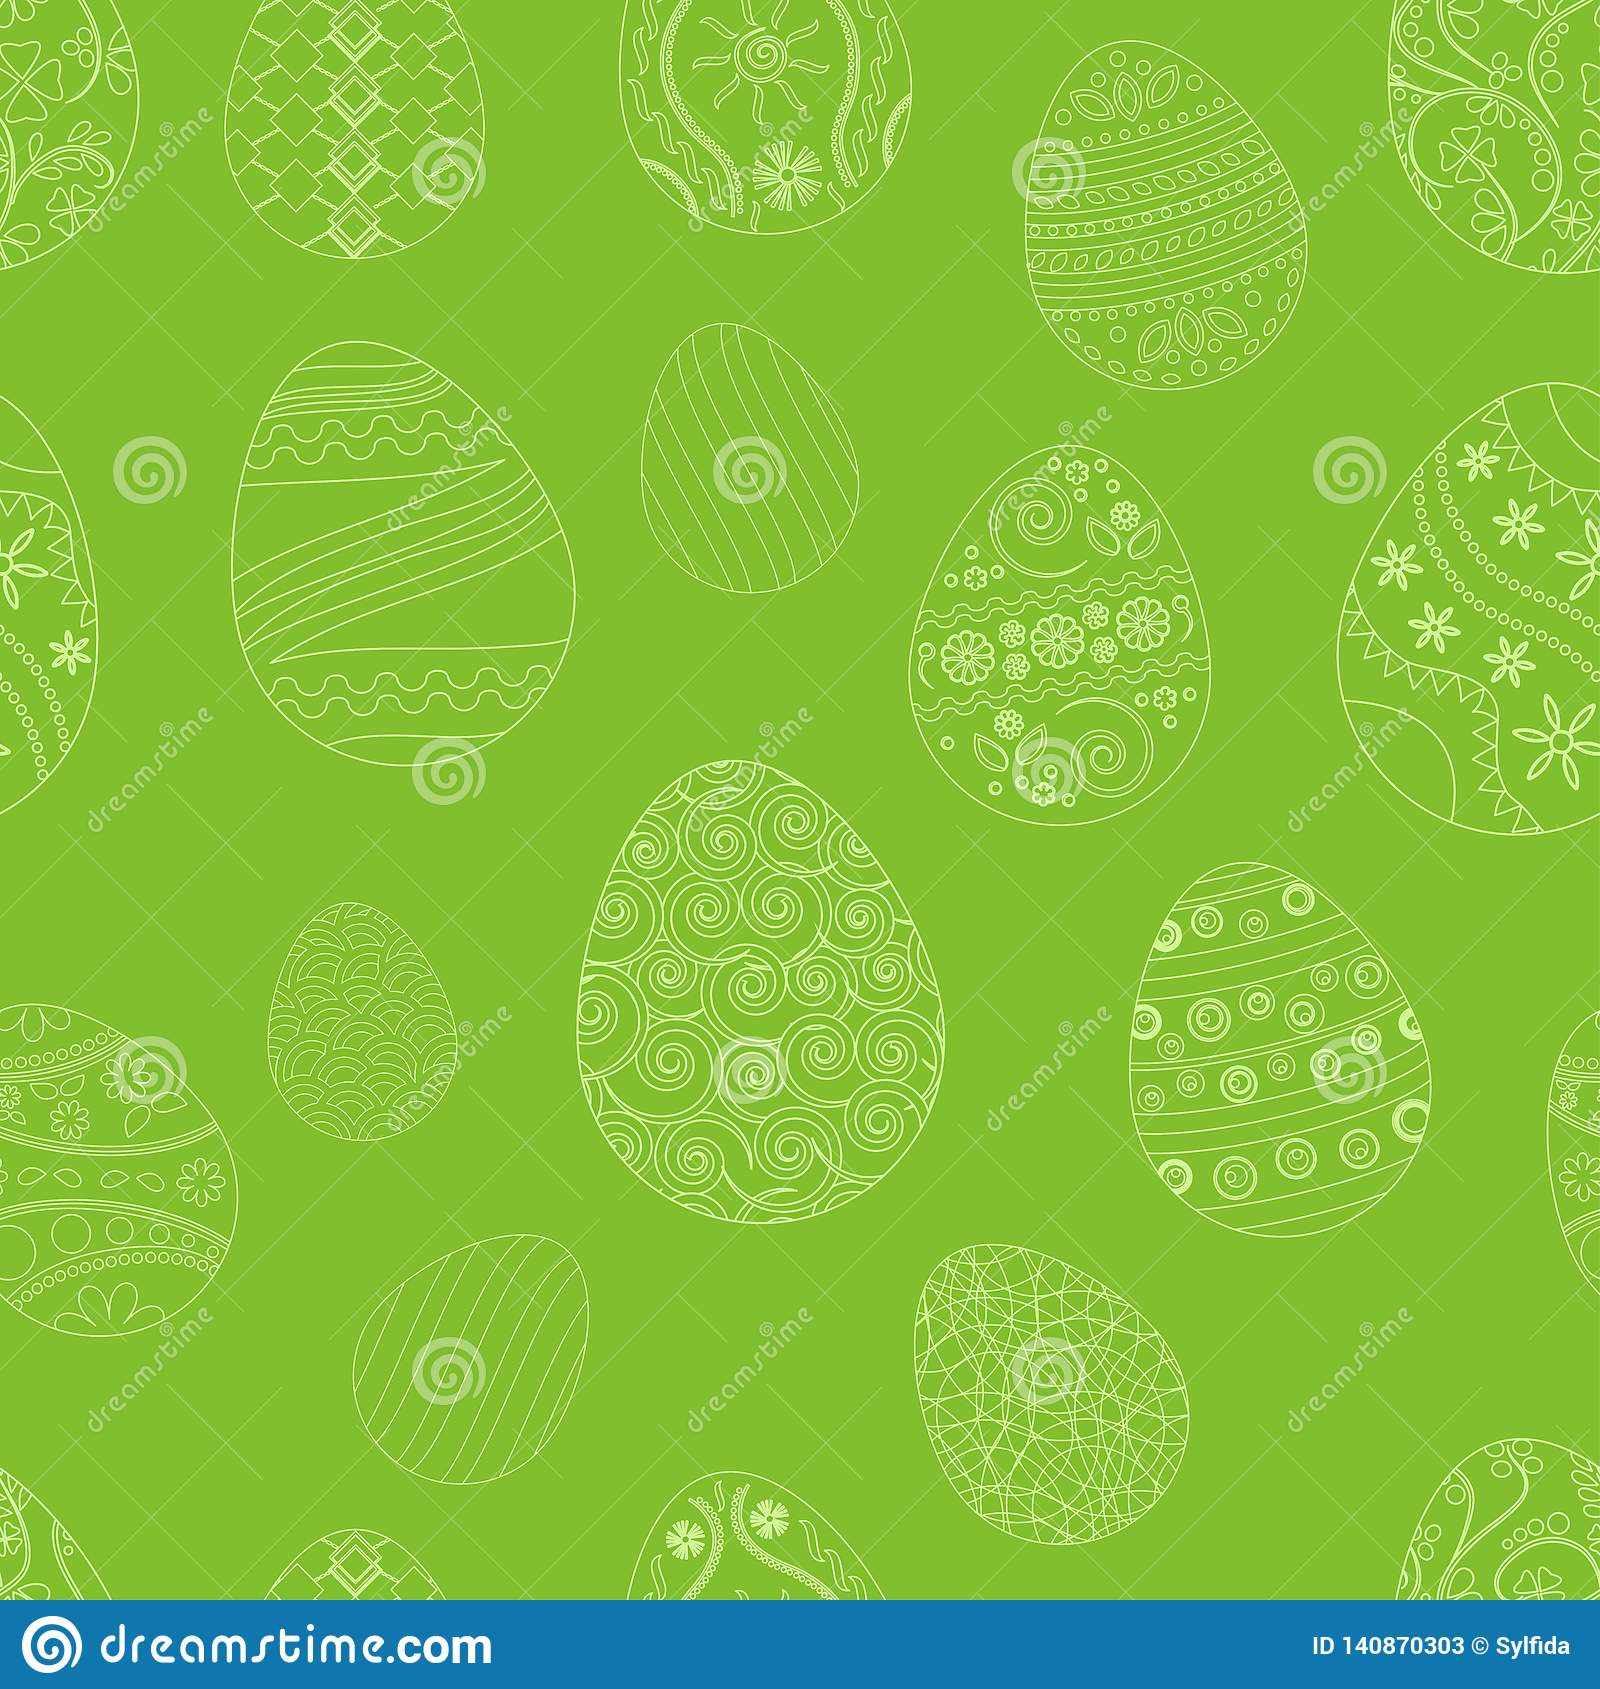 Festive seamless pattern with Easter eggs on green background. Vector illustration